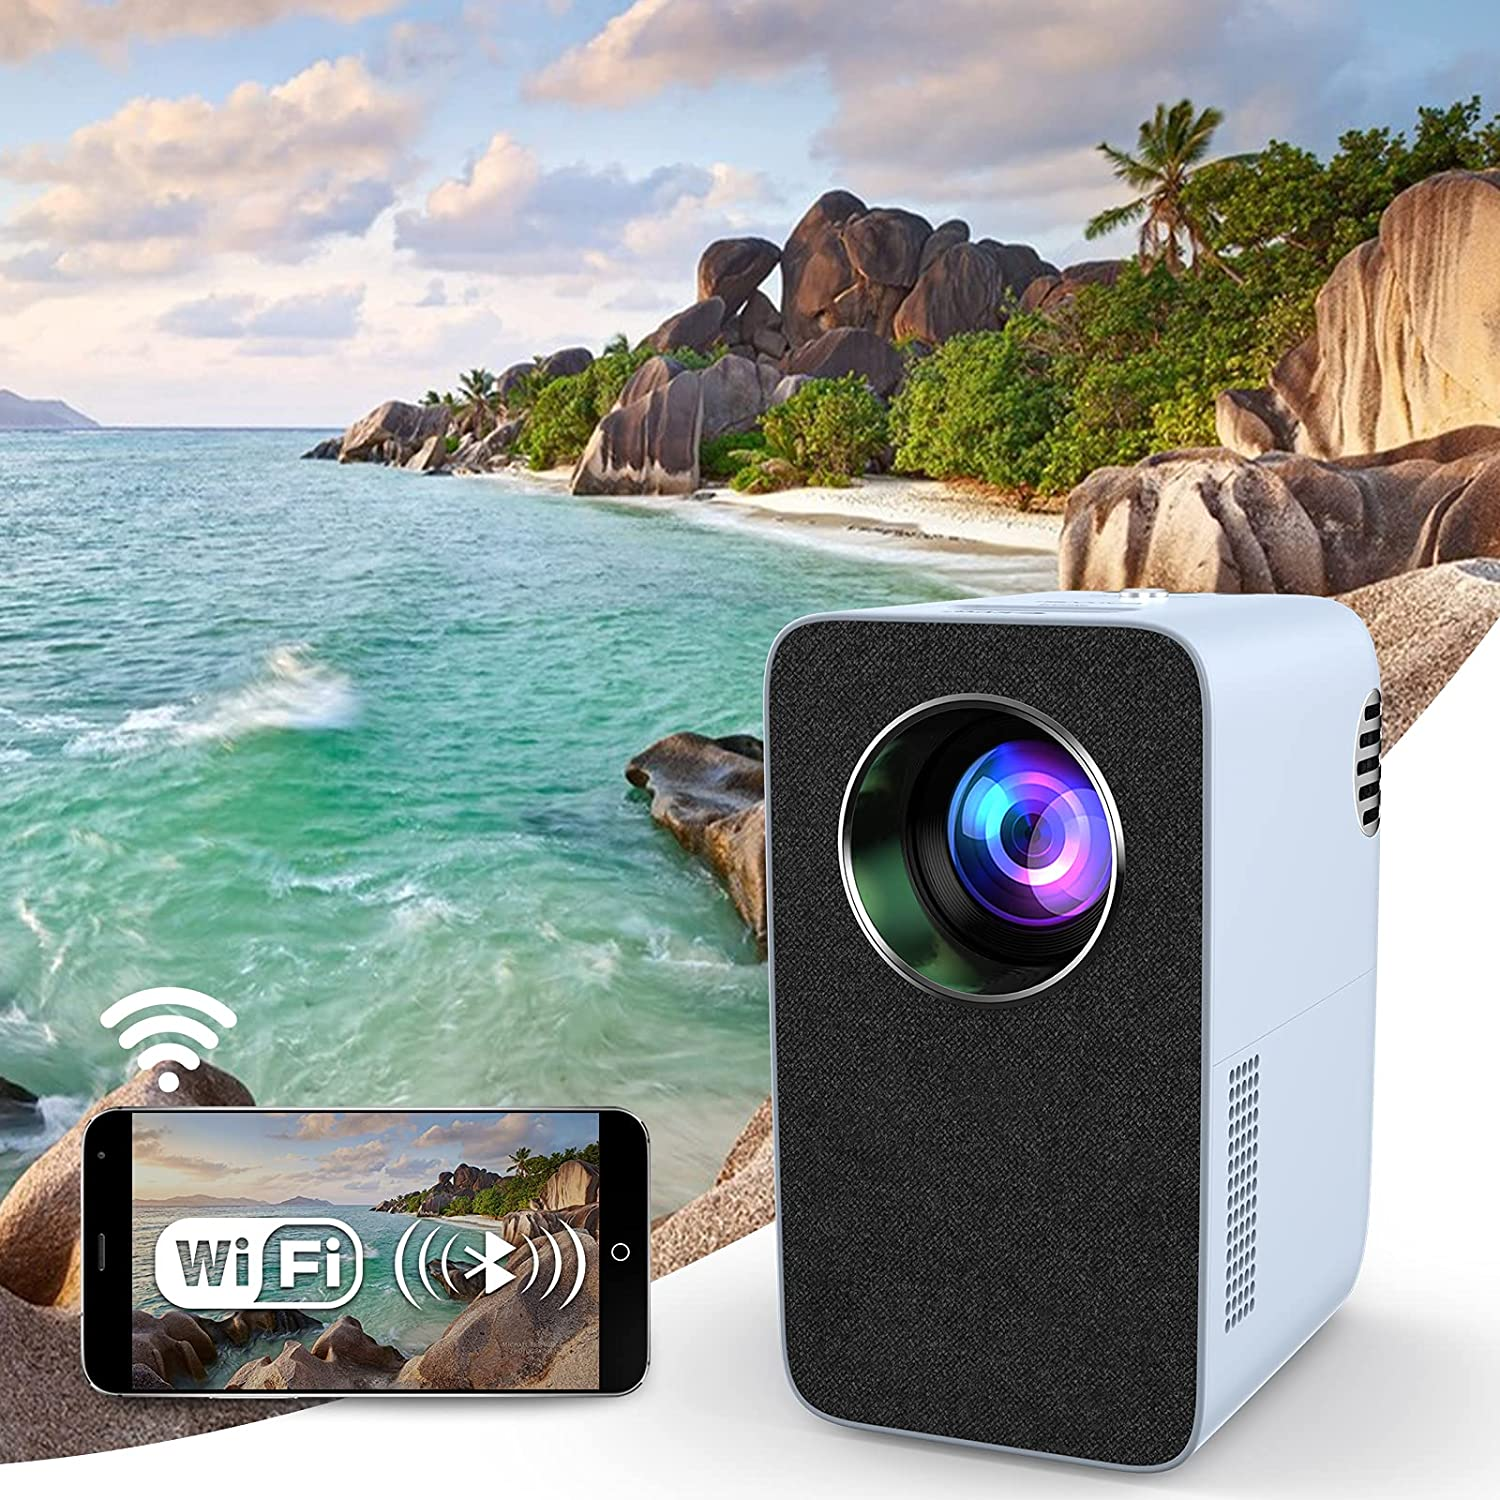 Native 1080P WiFi Projector with Bluetooth Speaker for Outdoor Movie, Full HD 150 Inch Display Home Theater Gaming Projector Wireless Screen Mirror for Smart Phone TV Stick PS4 X-Box Laptop HDMI USB